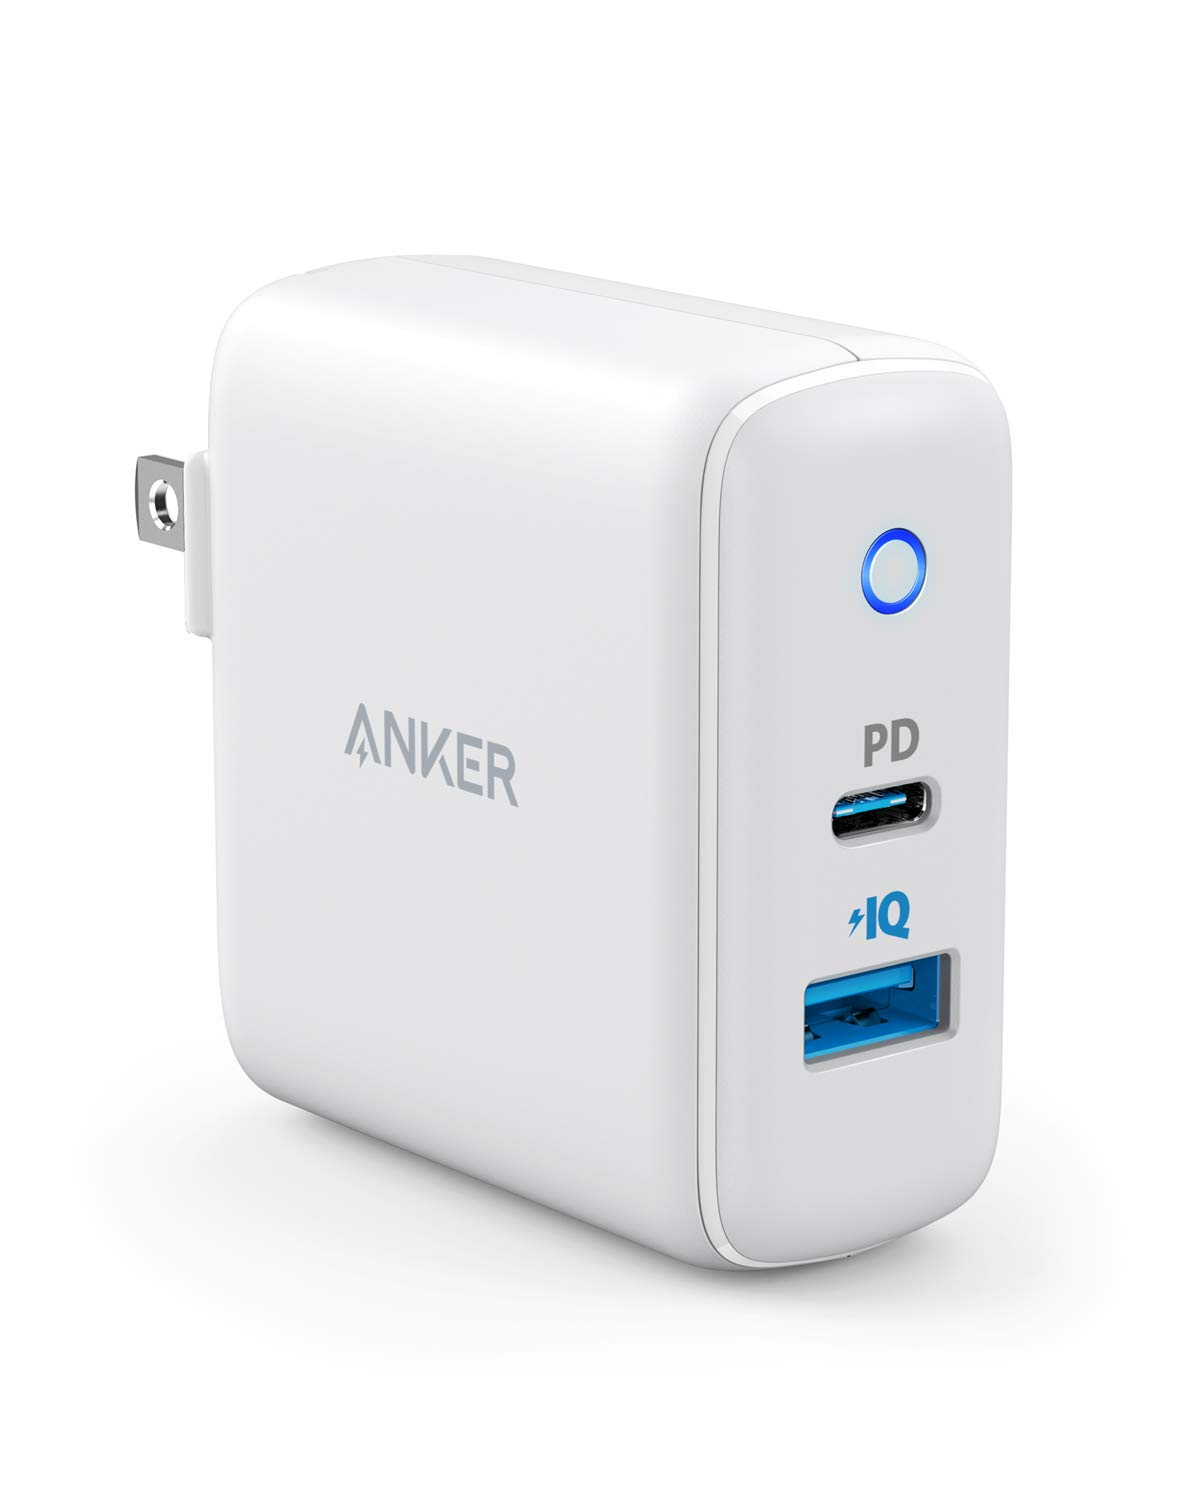 USB C Wall Charger, Anker 30W 2 Port Type C Charger with 18W Power Delivery, Powerport PD 2 with Foldable Plug for Ipad Pro, iPhone 11/ Pro/Max/XS/Max/XR/X, Pixel, Galaxy and More by Anker